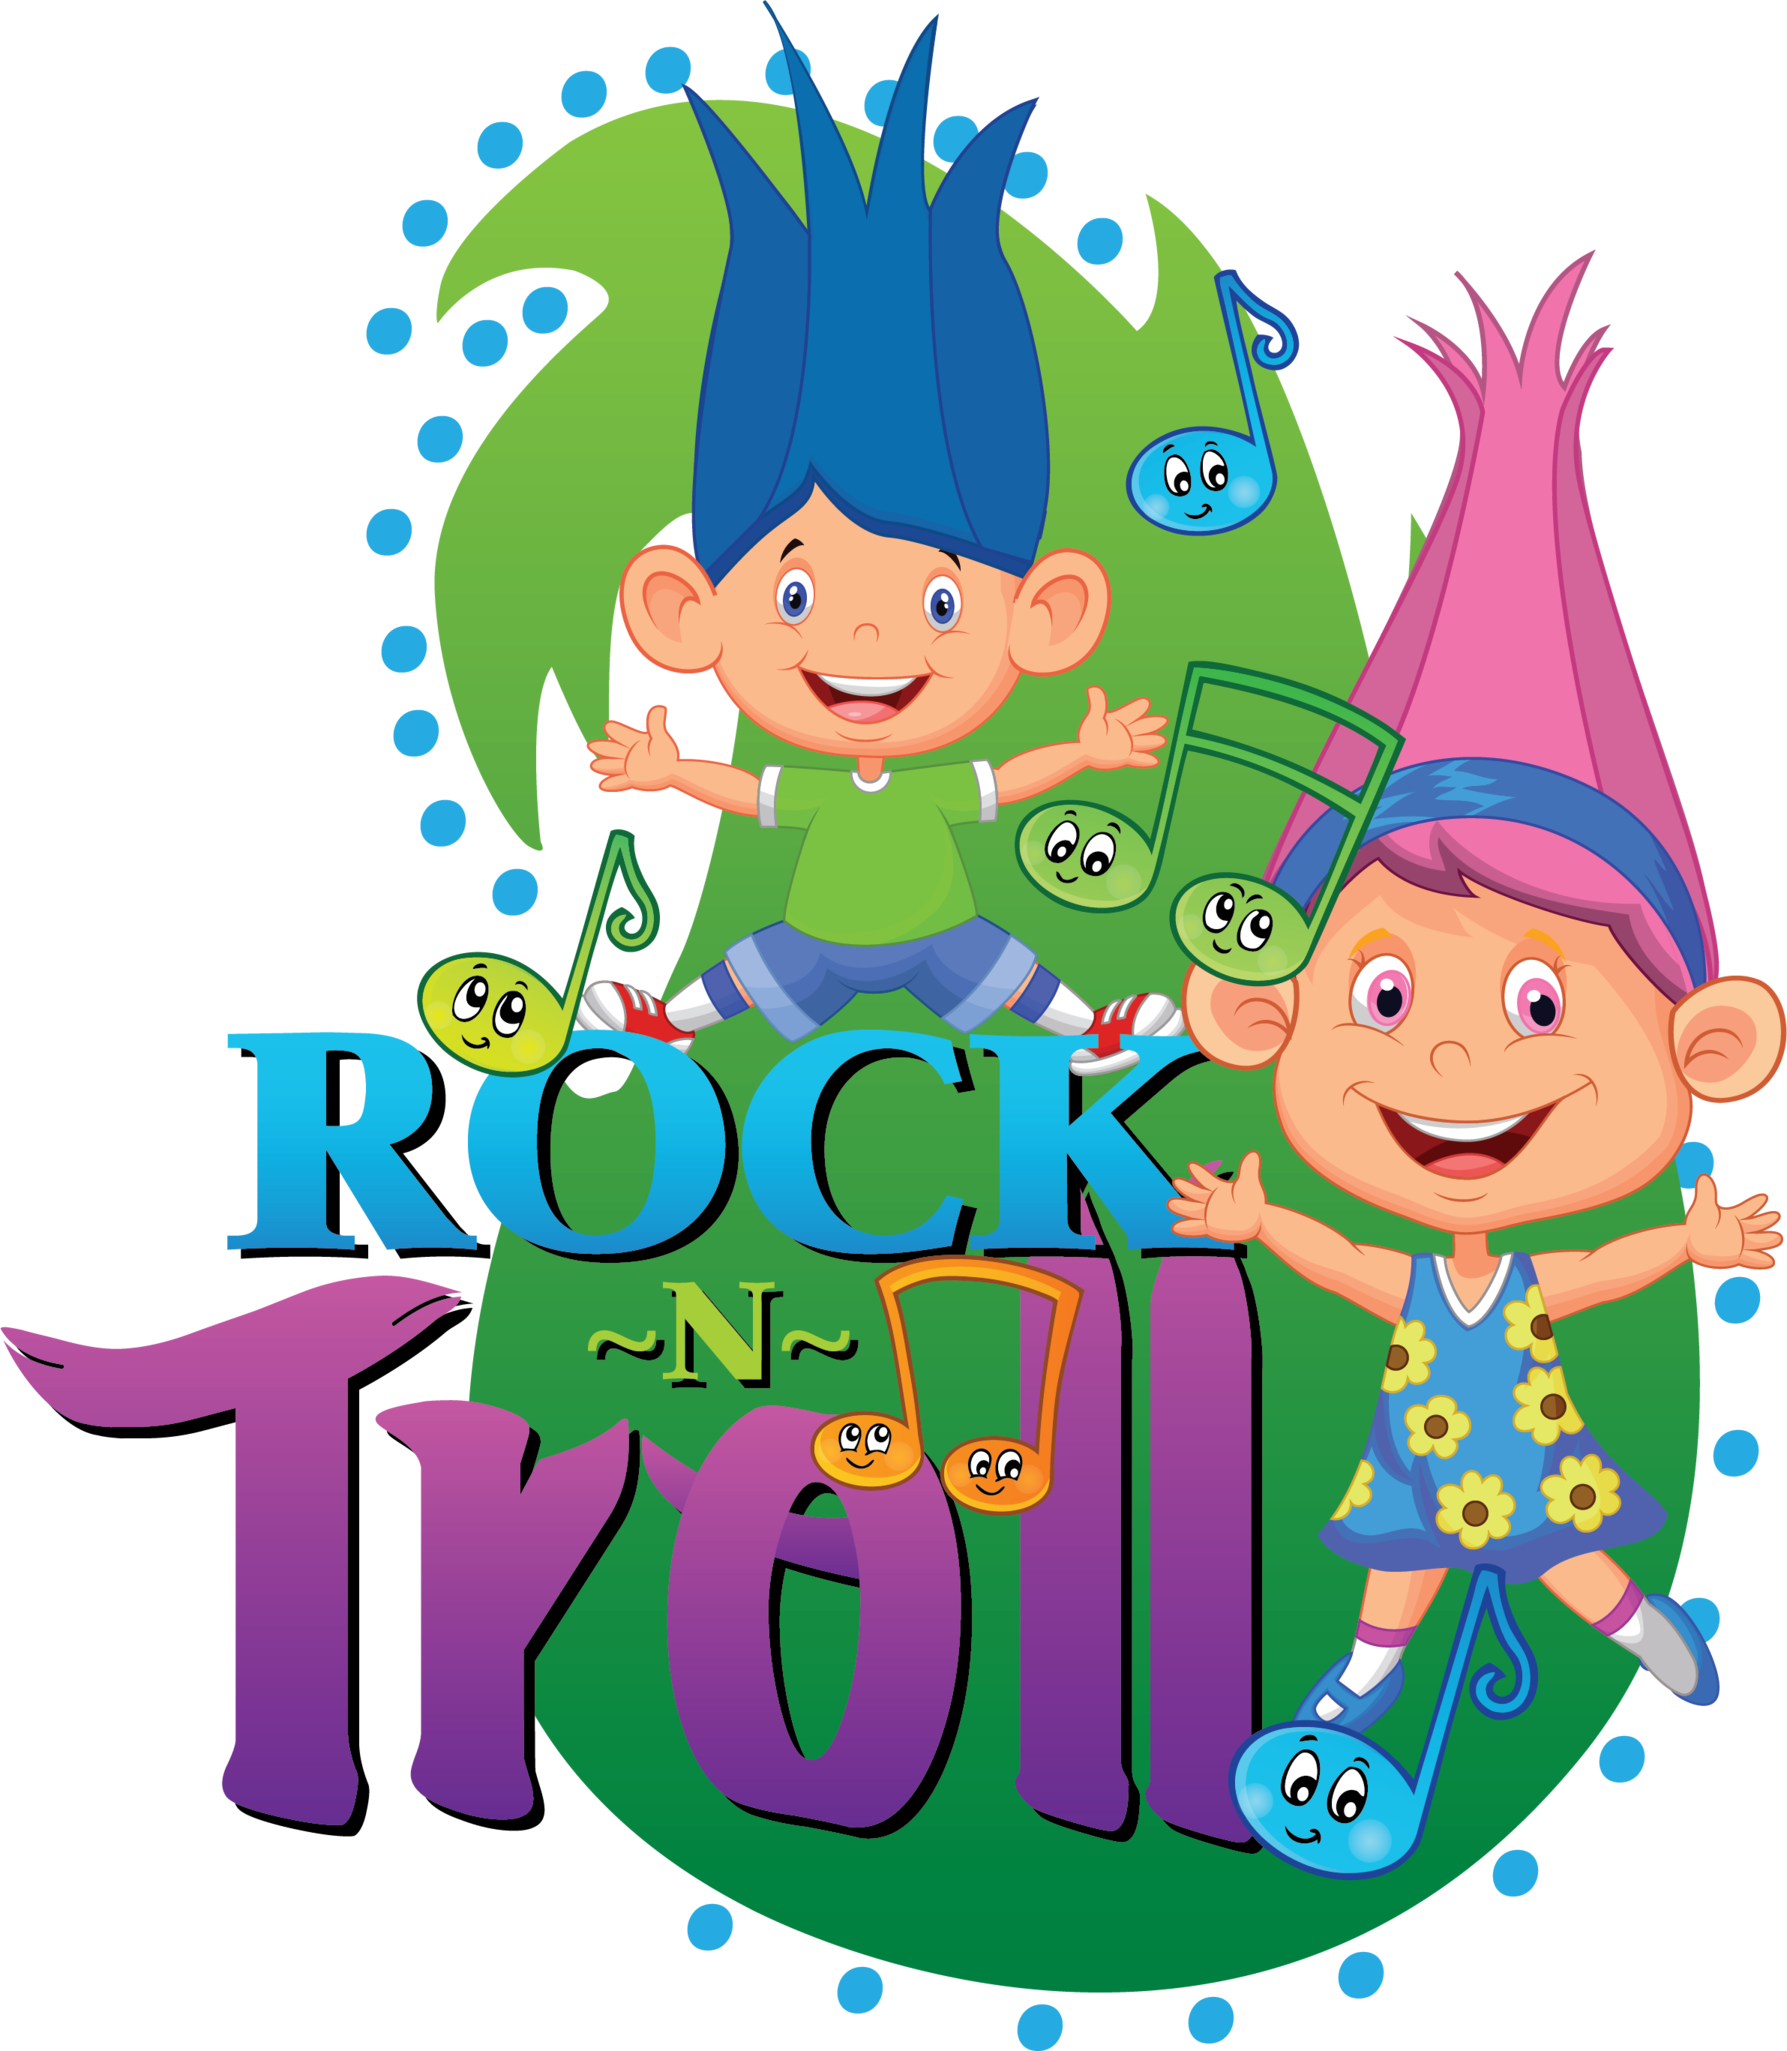 Rock n Troll Mini Camp: Ages 3-7